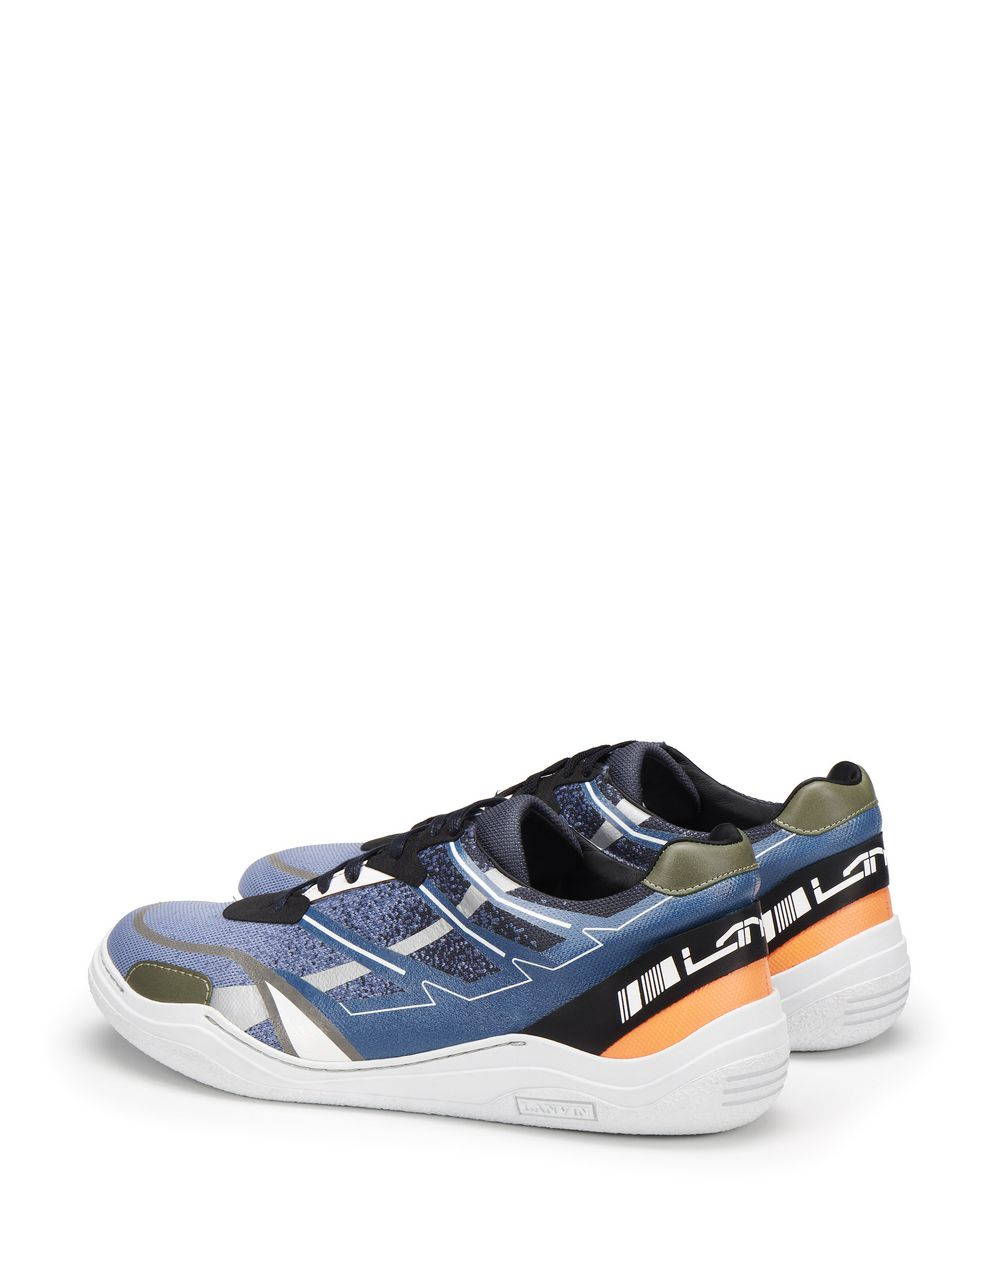 LOW-TOP SCREEN-PRINTED DIVING SNEAKERS - Lanvin